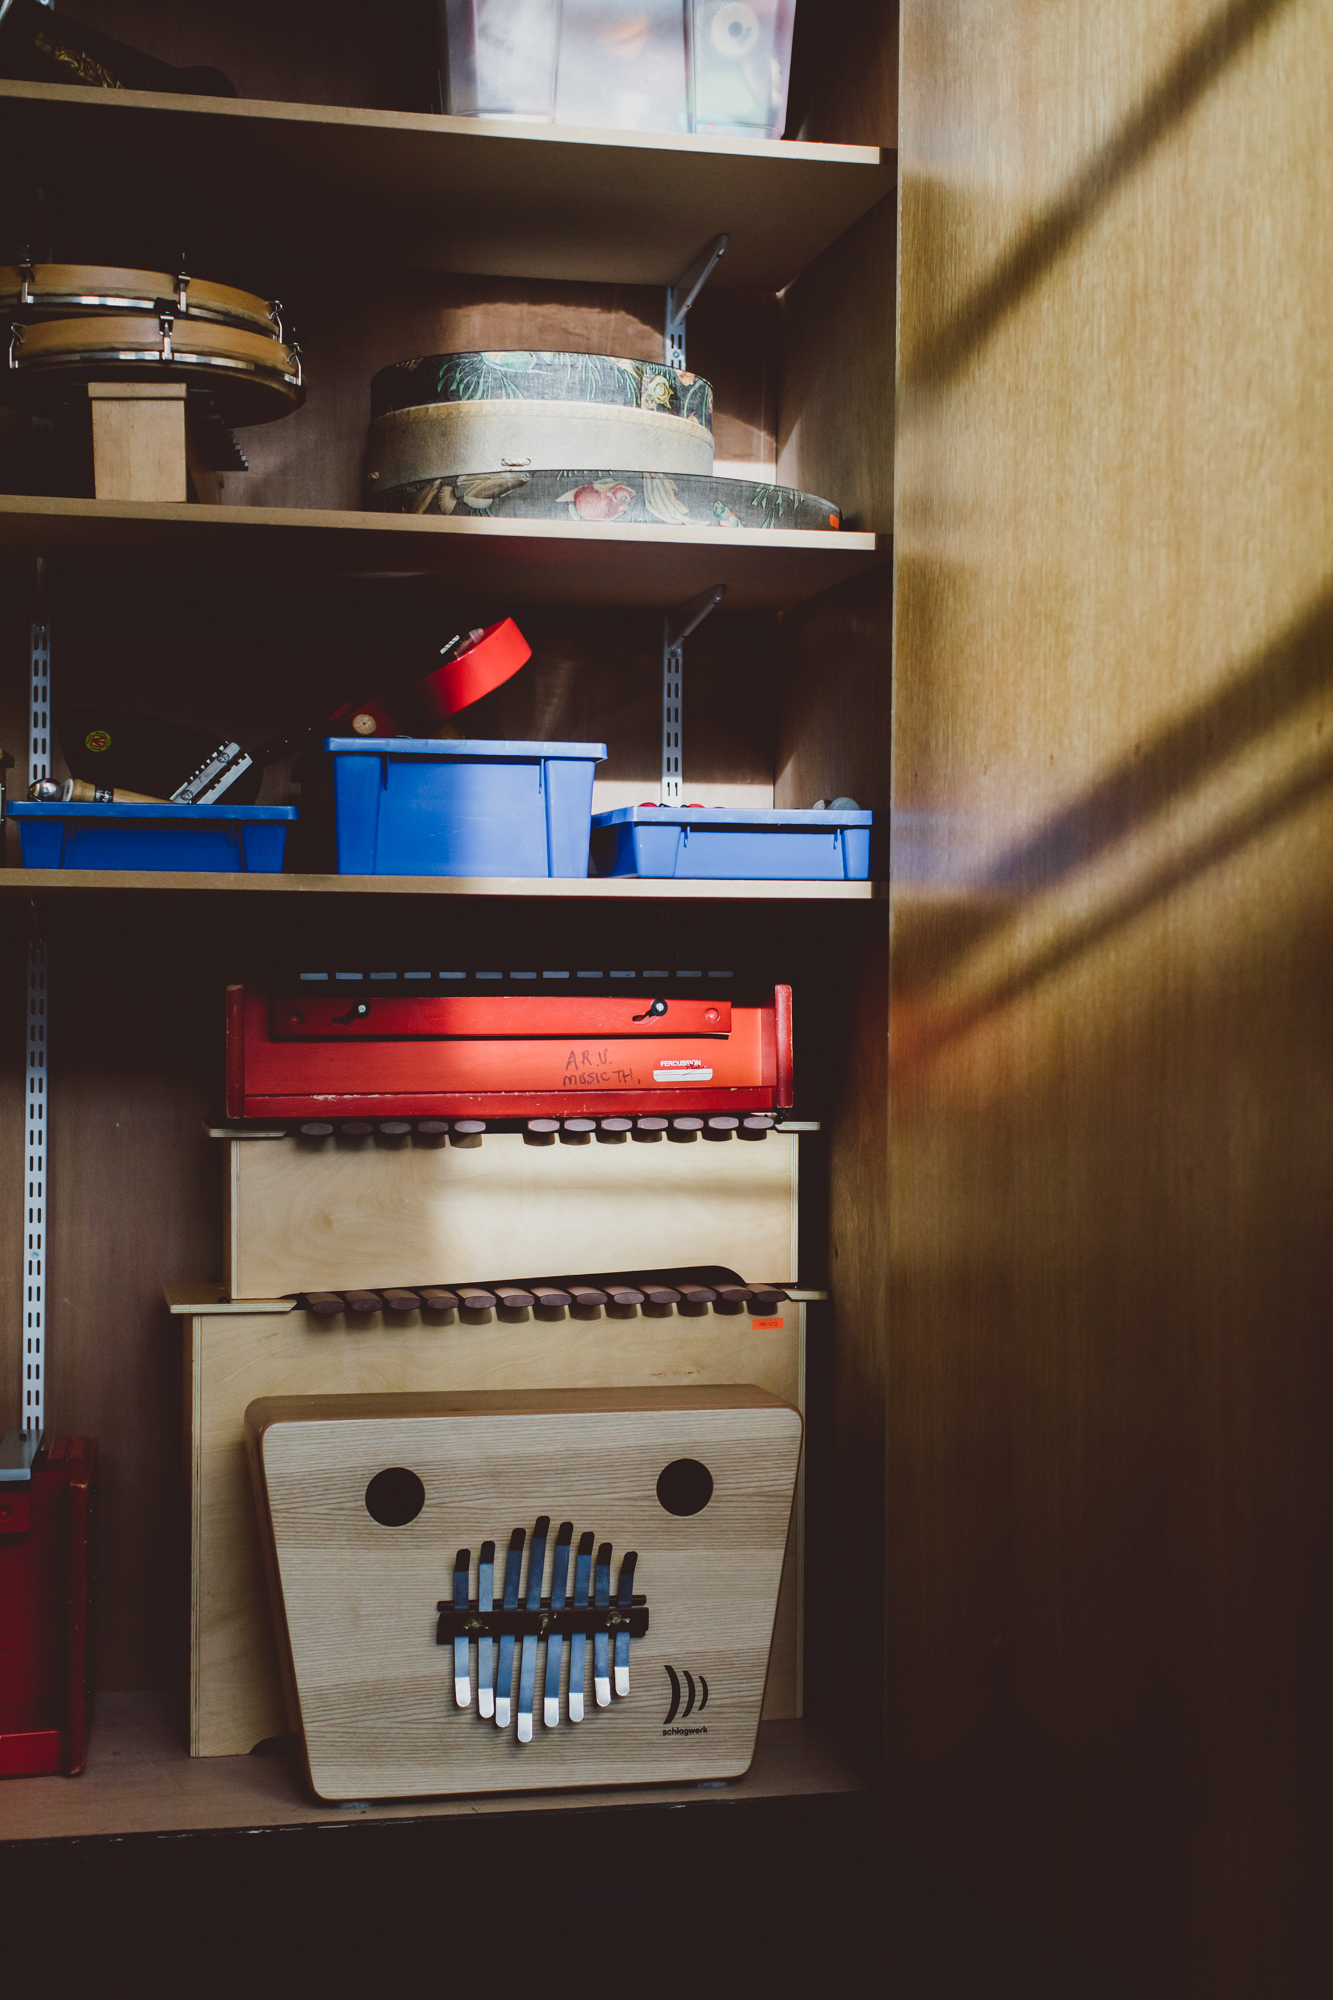 Percussion instruments in store cupboard